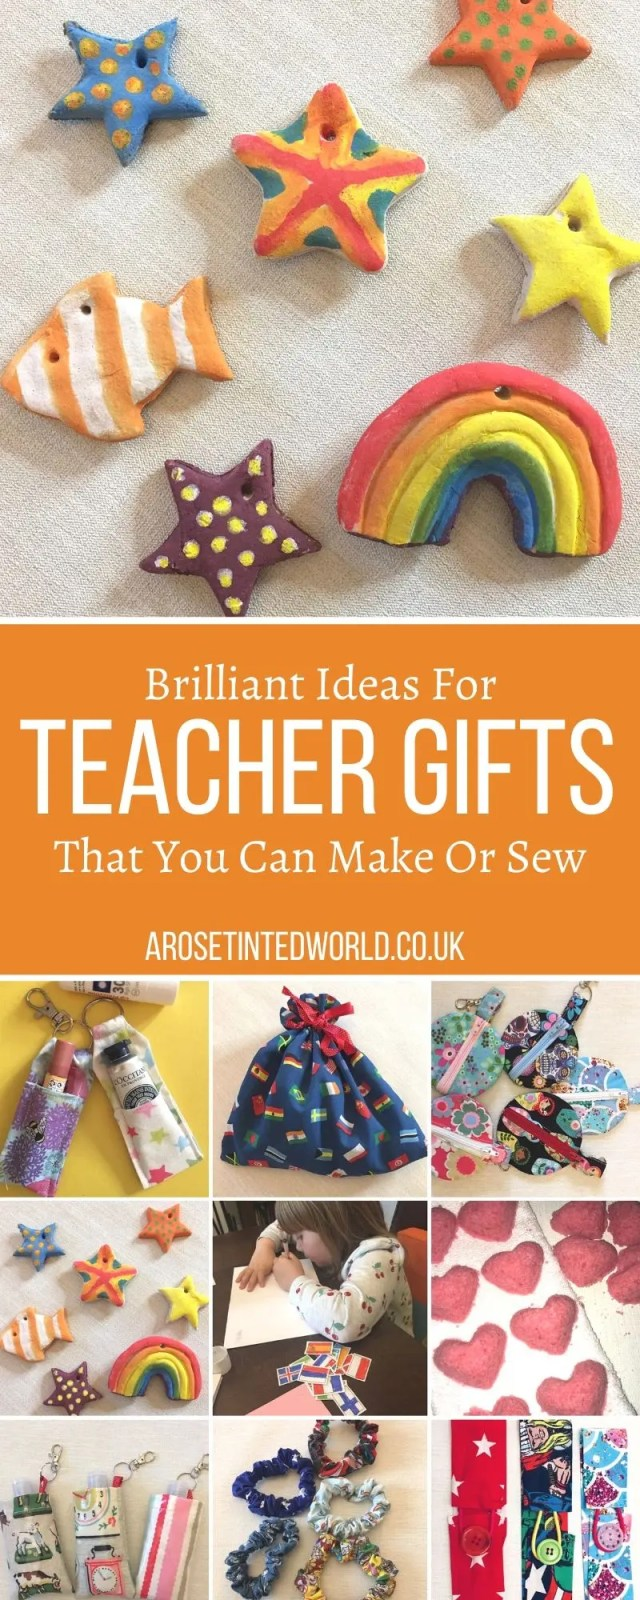 Teacher Gifts That You Can Make Or Sew - some great ideas for hand made thank you gifts to create for a teacher. Money saving presents that you can make at home. Show some love to the special teacher in your life with this gift guide full of brilliant ideas that they will go crazy for. Perfect for Christmas, end of year and end of term. #sewinggifts #sewing #teachergifts #thankyouteacher #teacherpresents #teachergiftguide #teachergiftideas